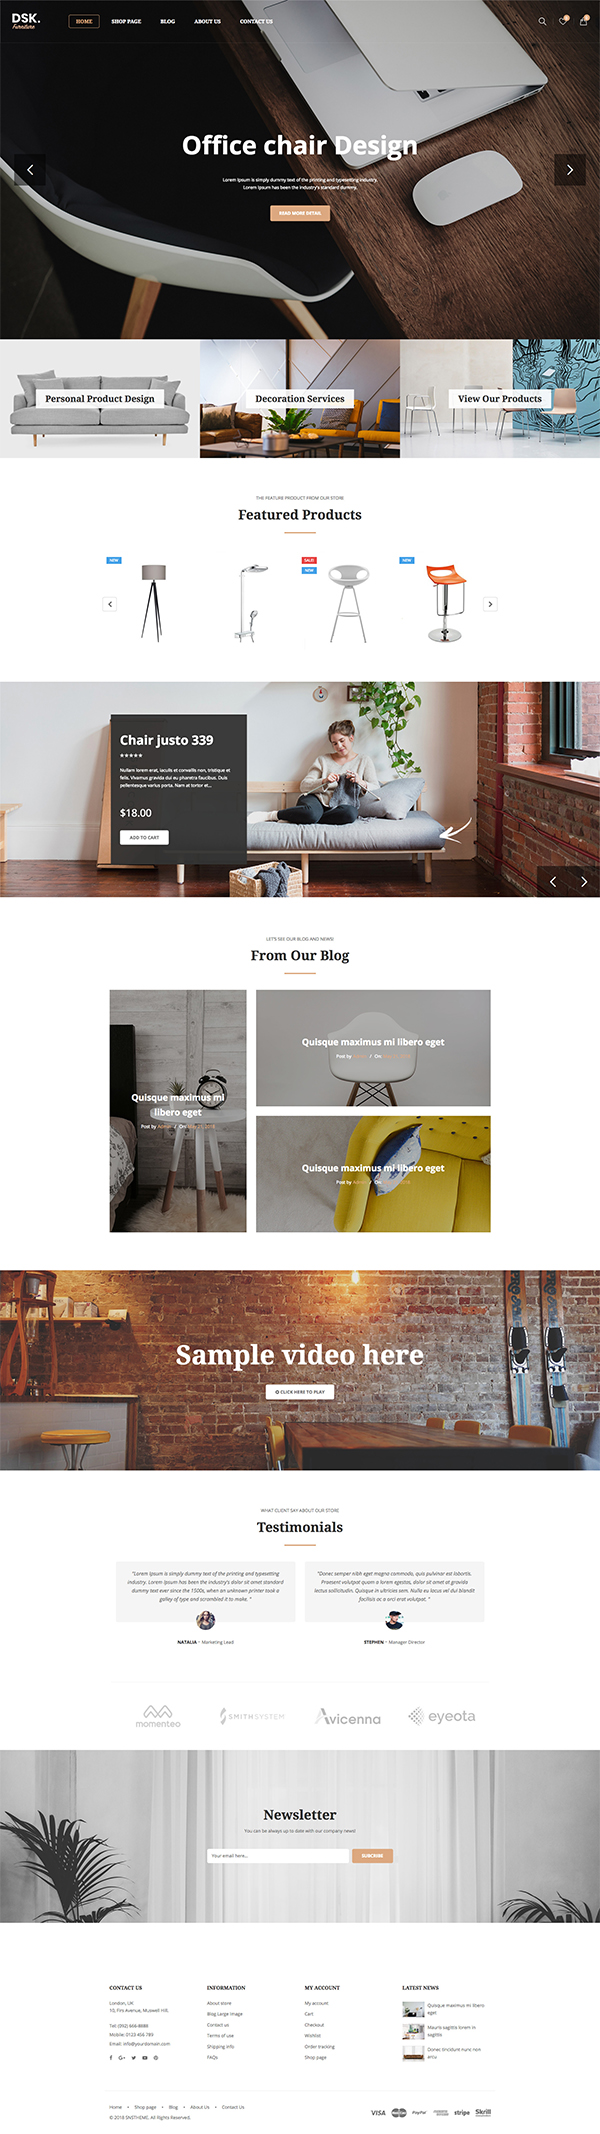 DSK - Furniture Store WooCommerce WordPress Theme